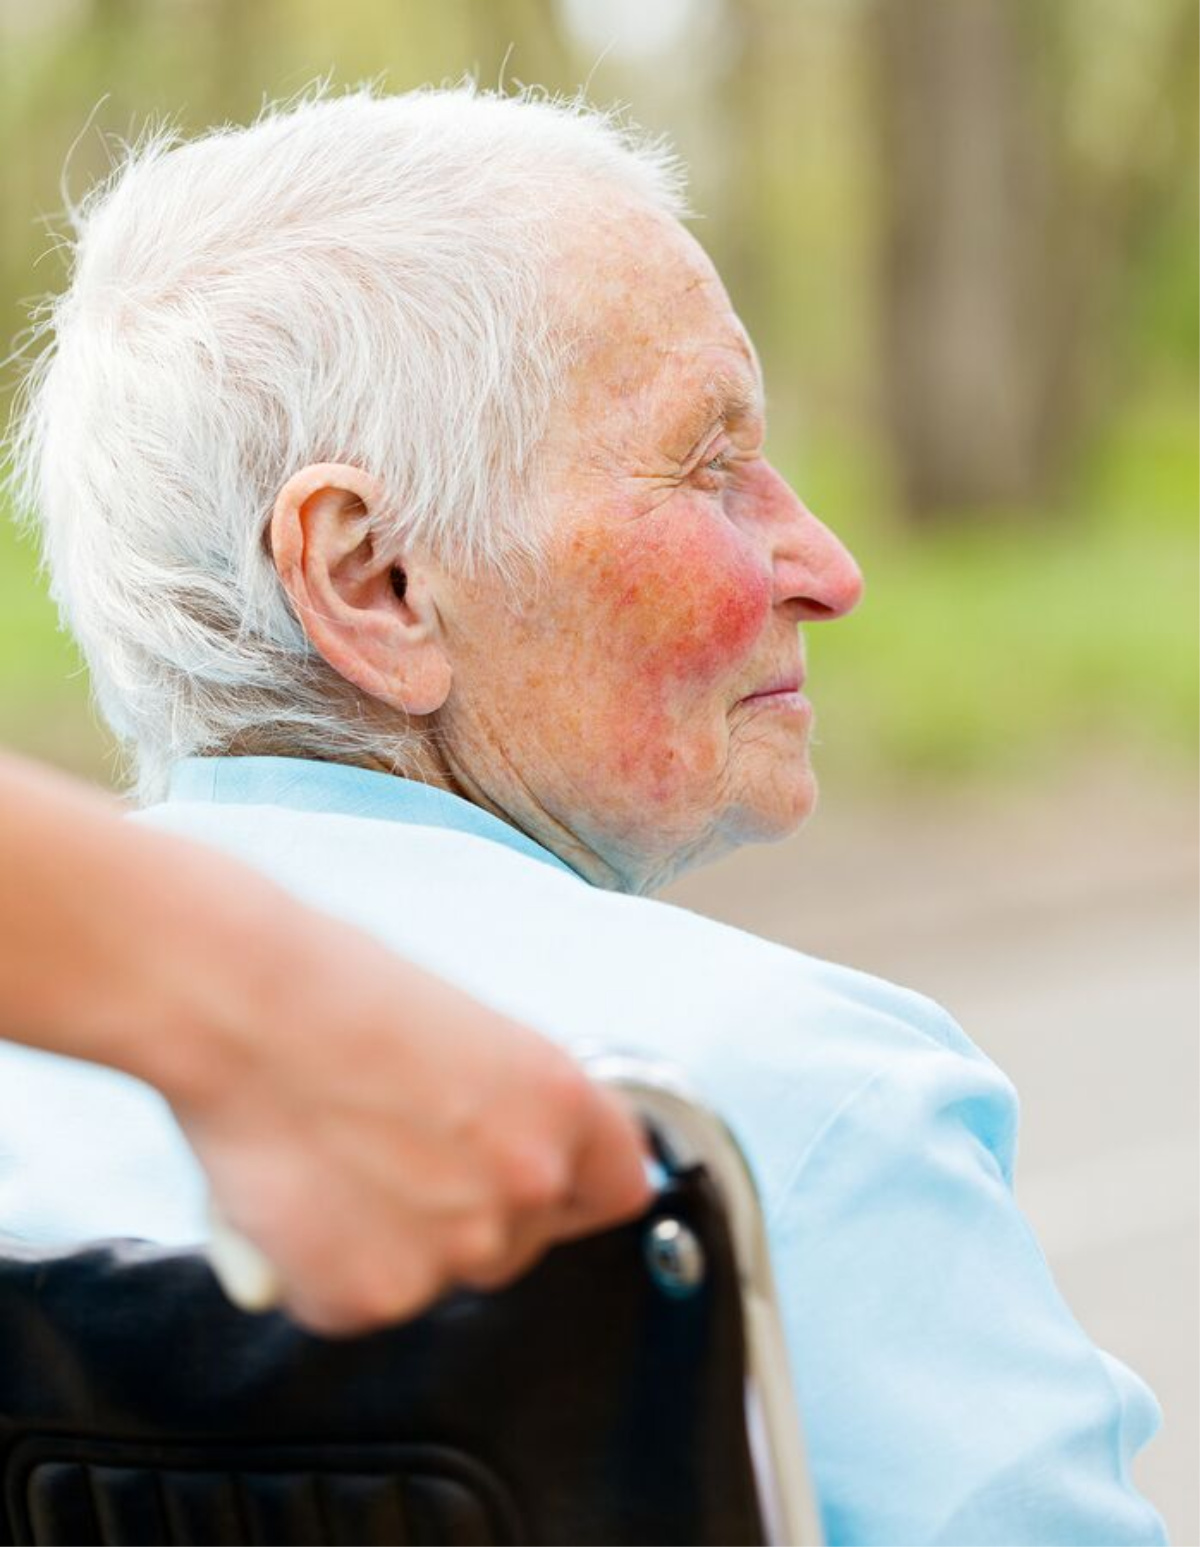 LARGE-bigstock-Elderly-Woman-In-Wheelchair-Ou-45389704_preview.jpg